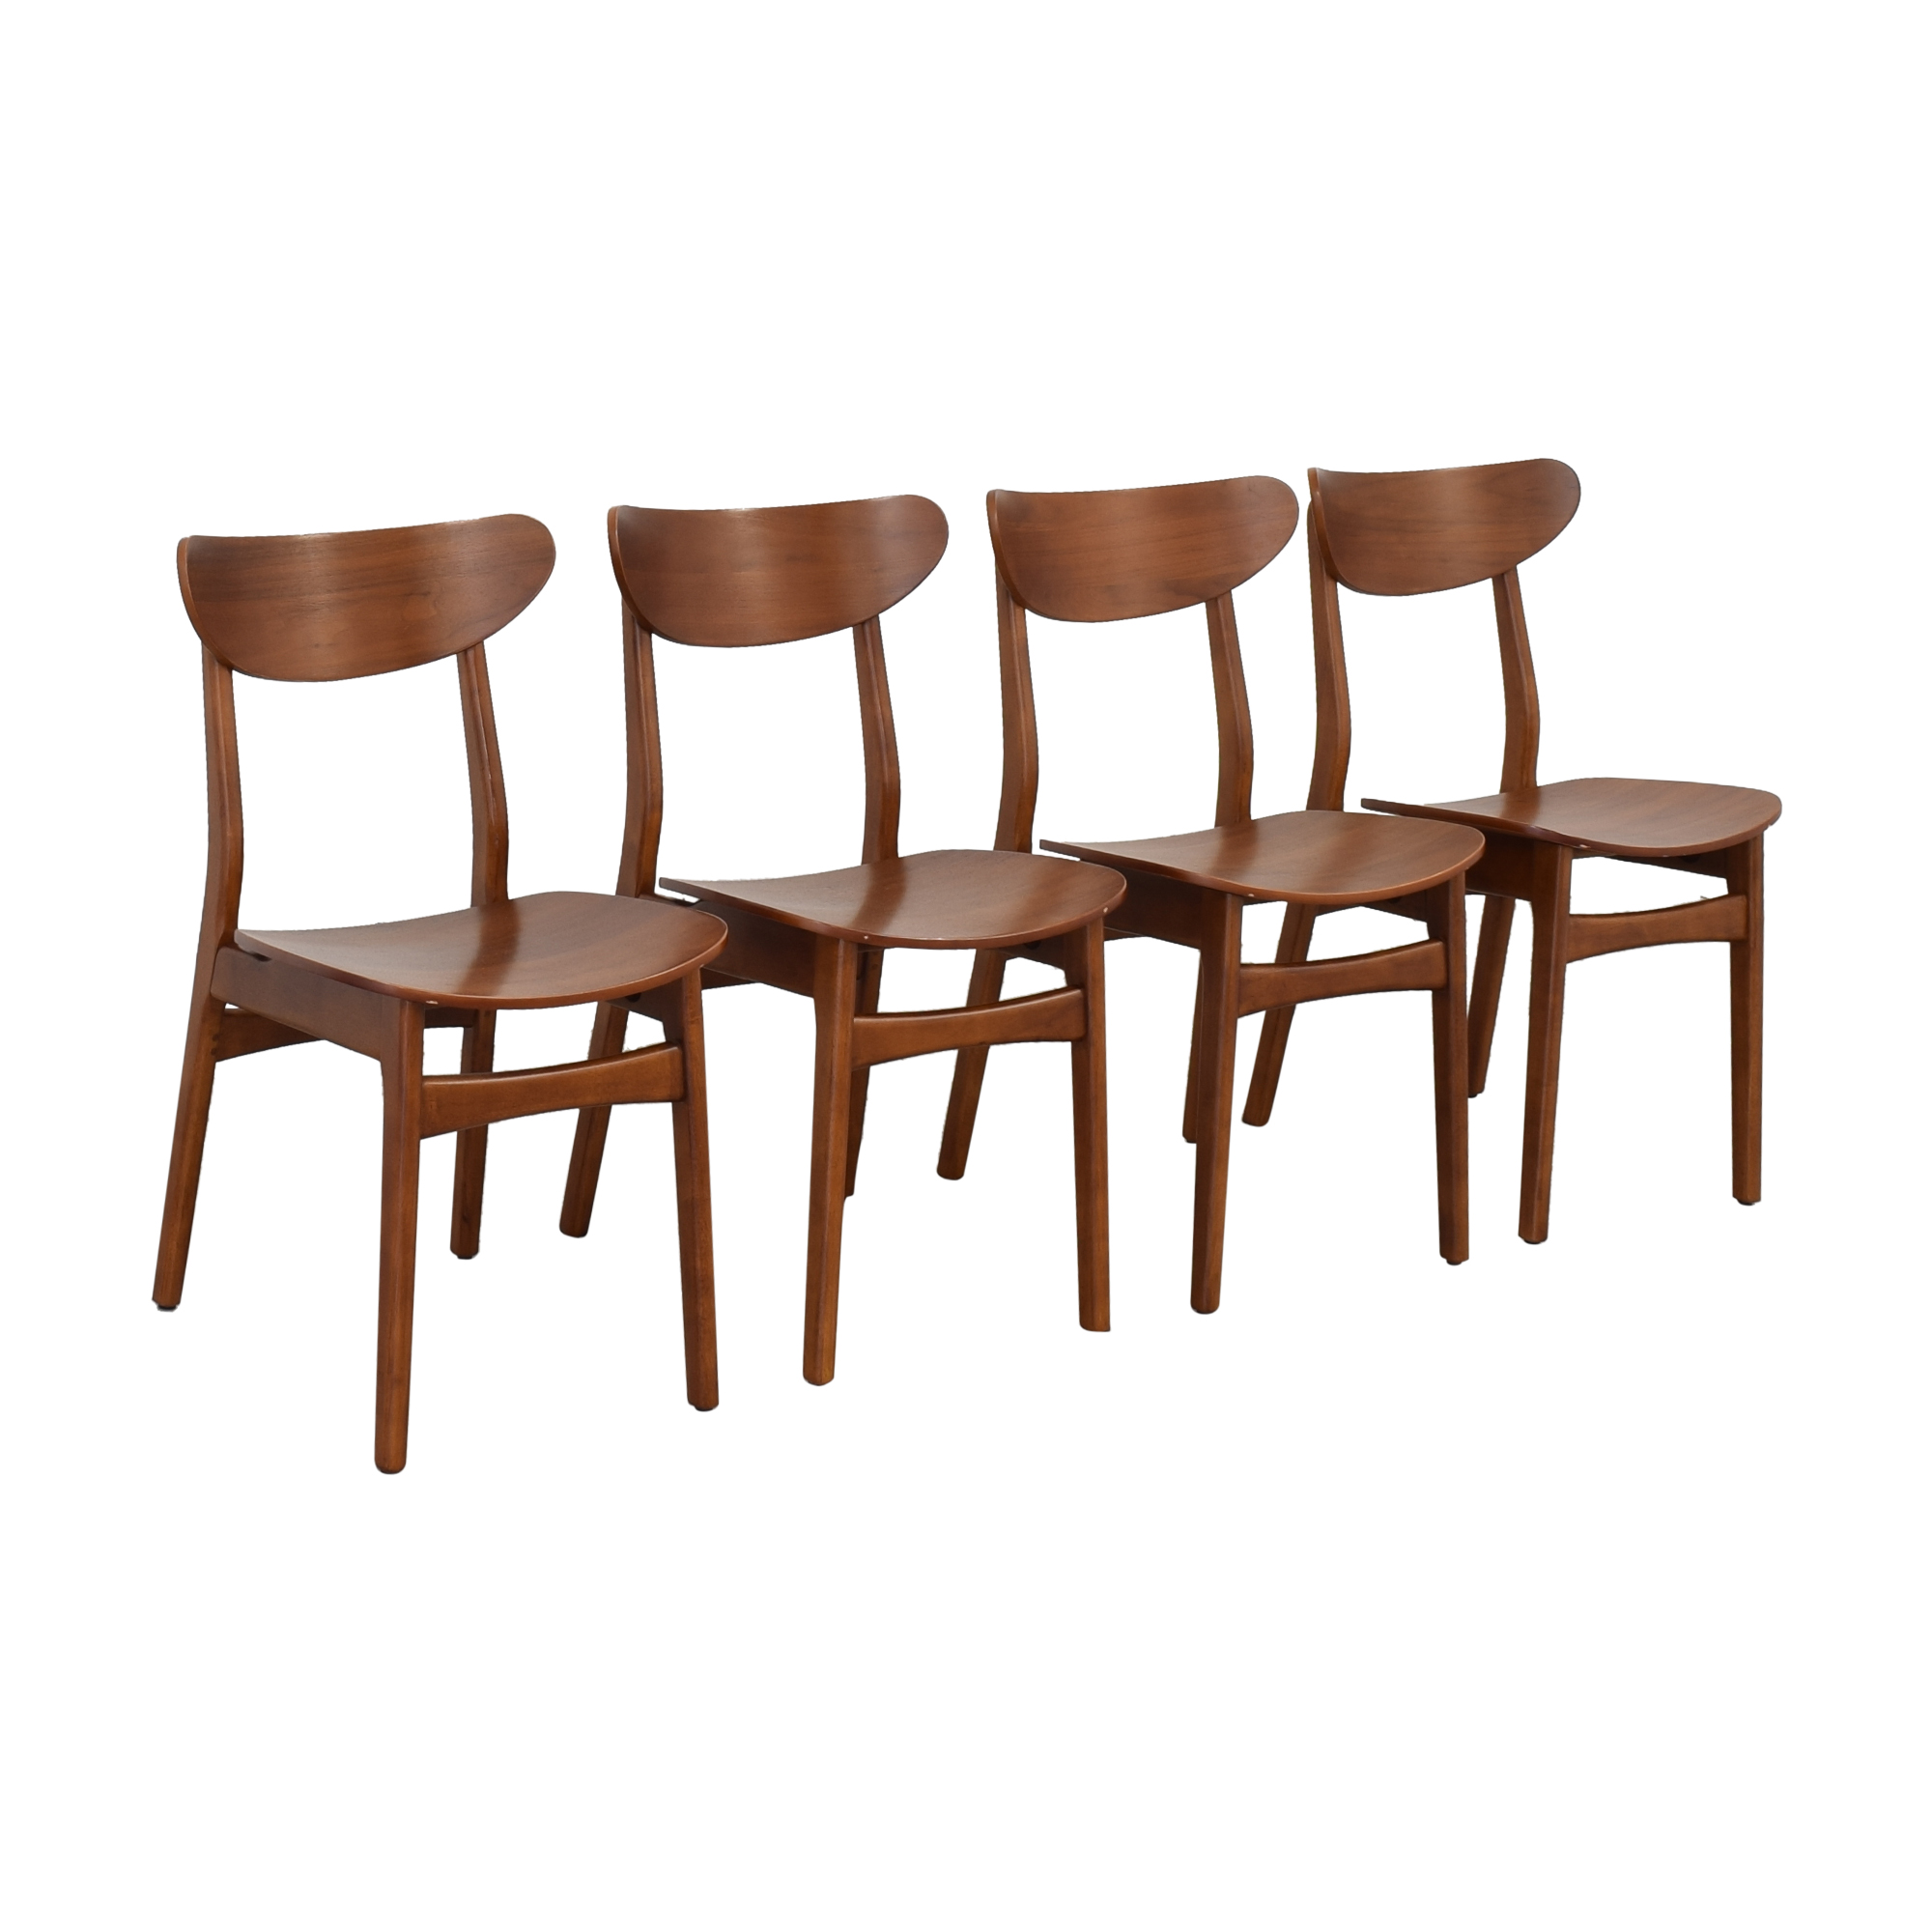 buy West Elm West Elm Classic Cafe Dining Chairs online